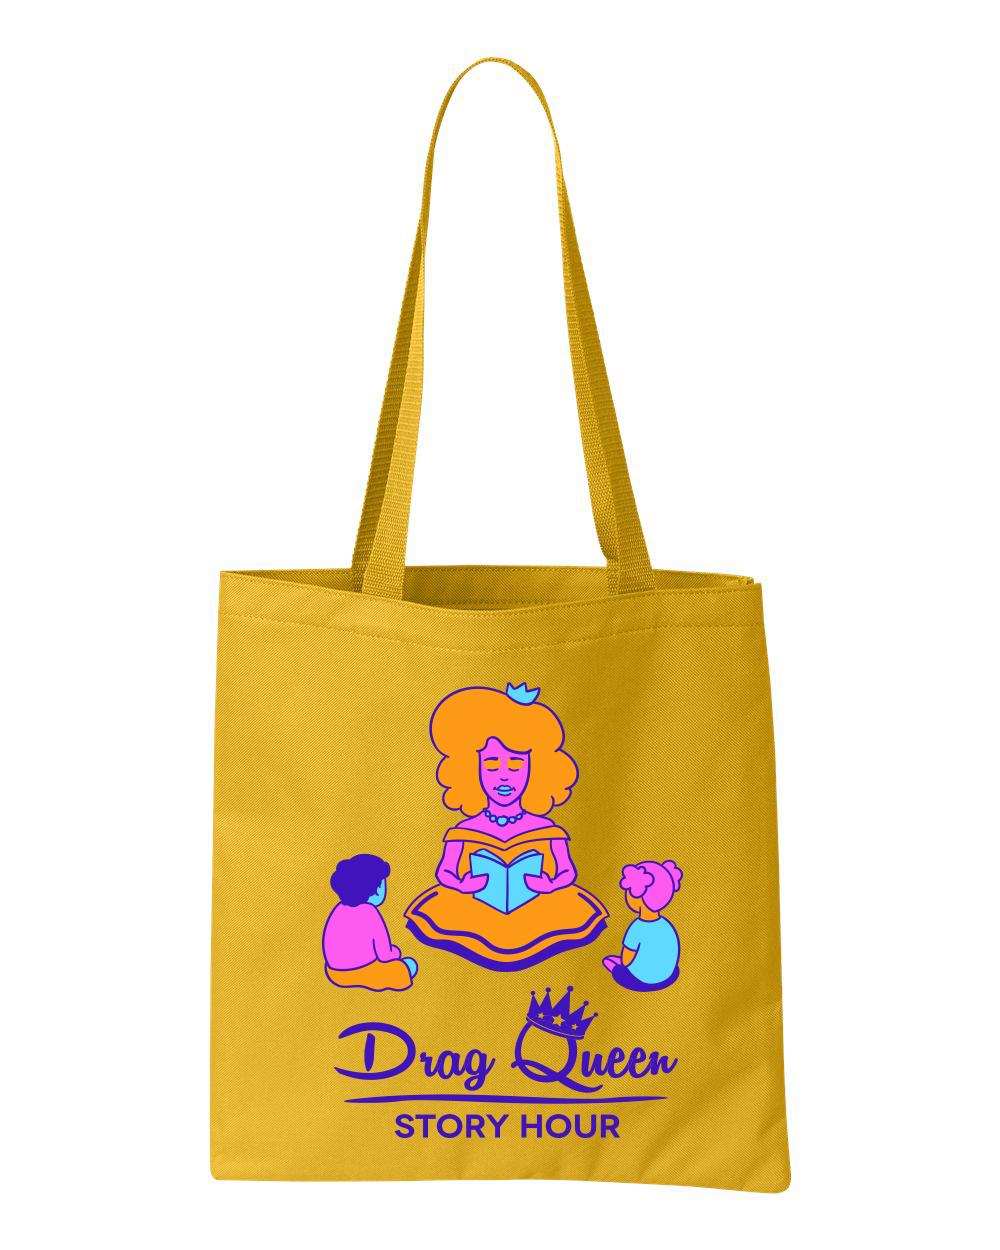 Drag Queen Story Hour tote bag in yellow